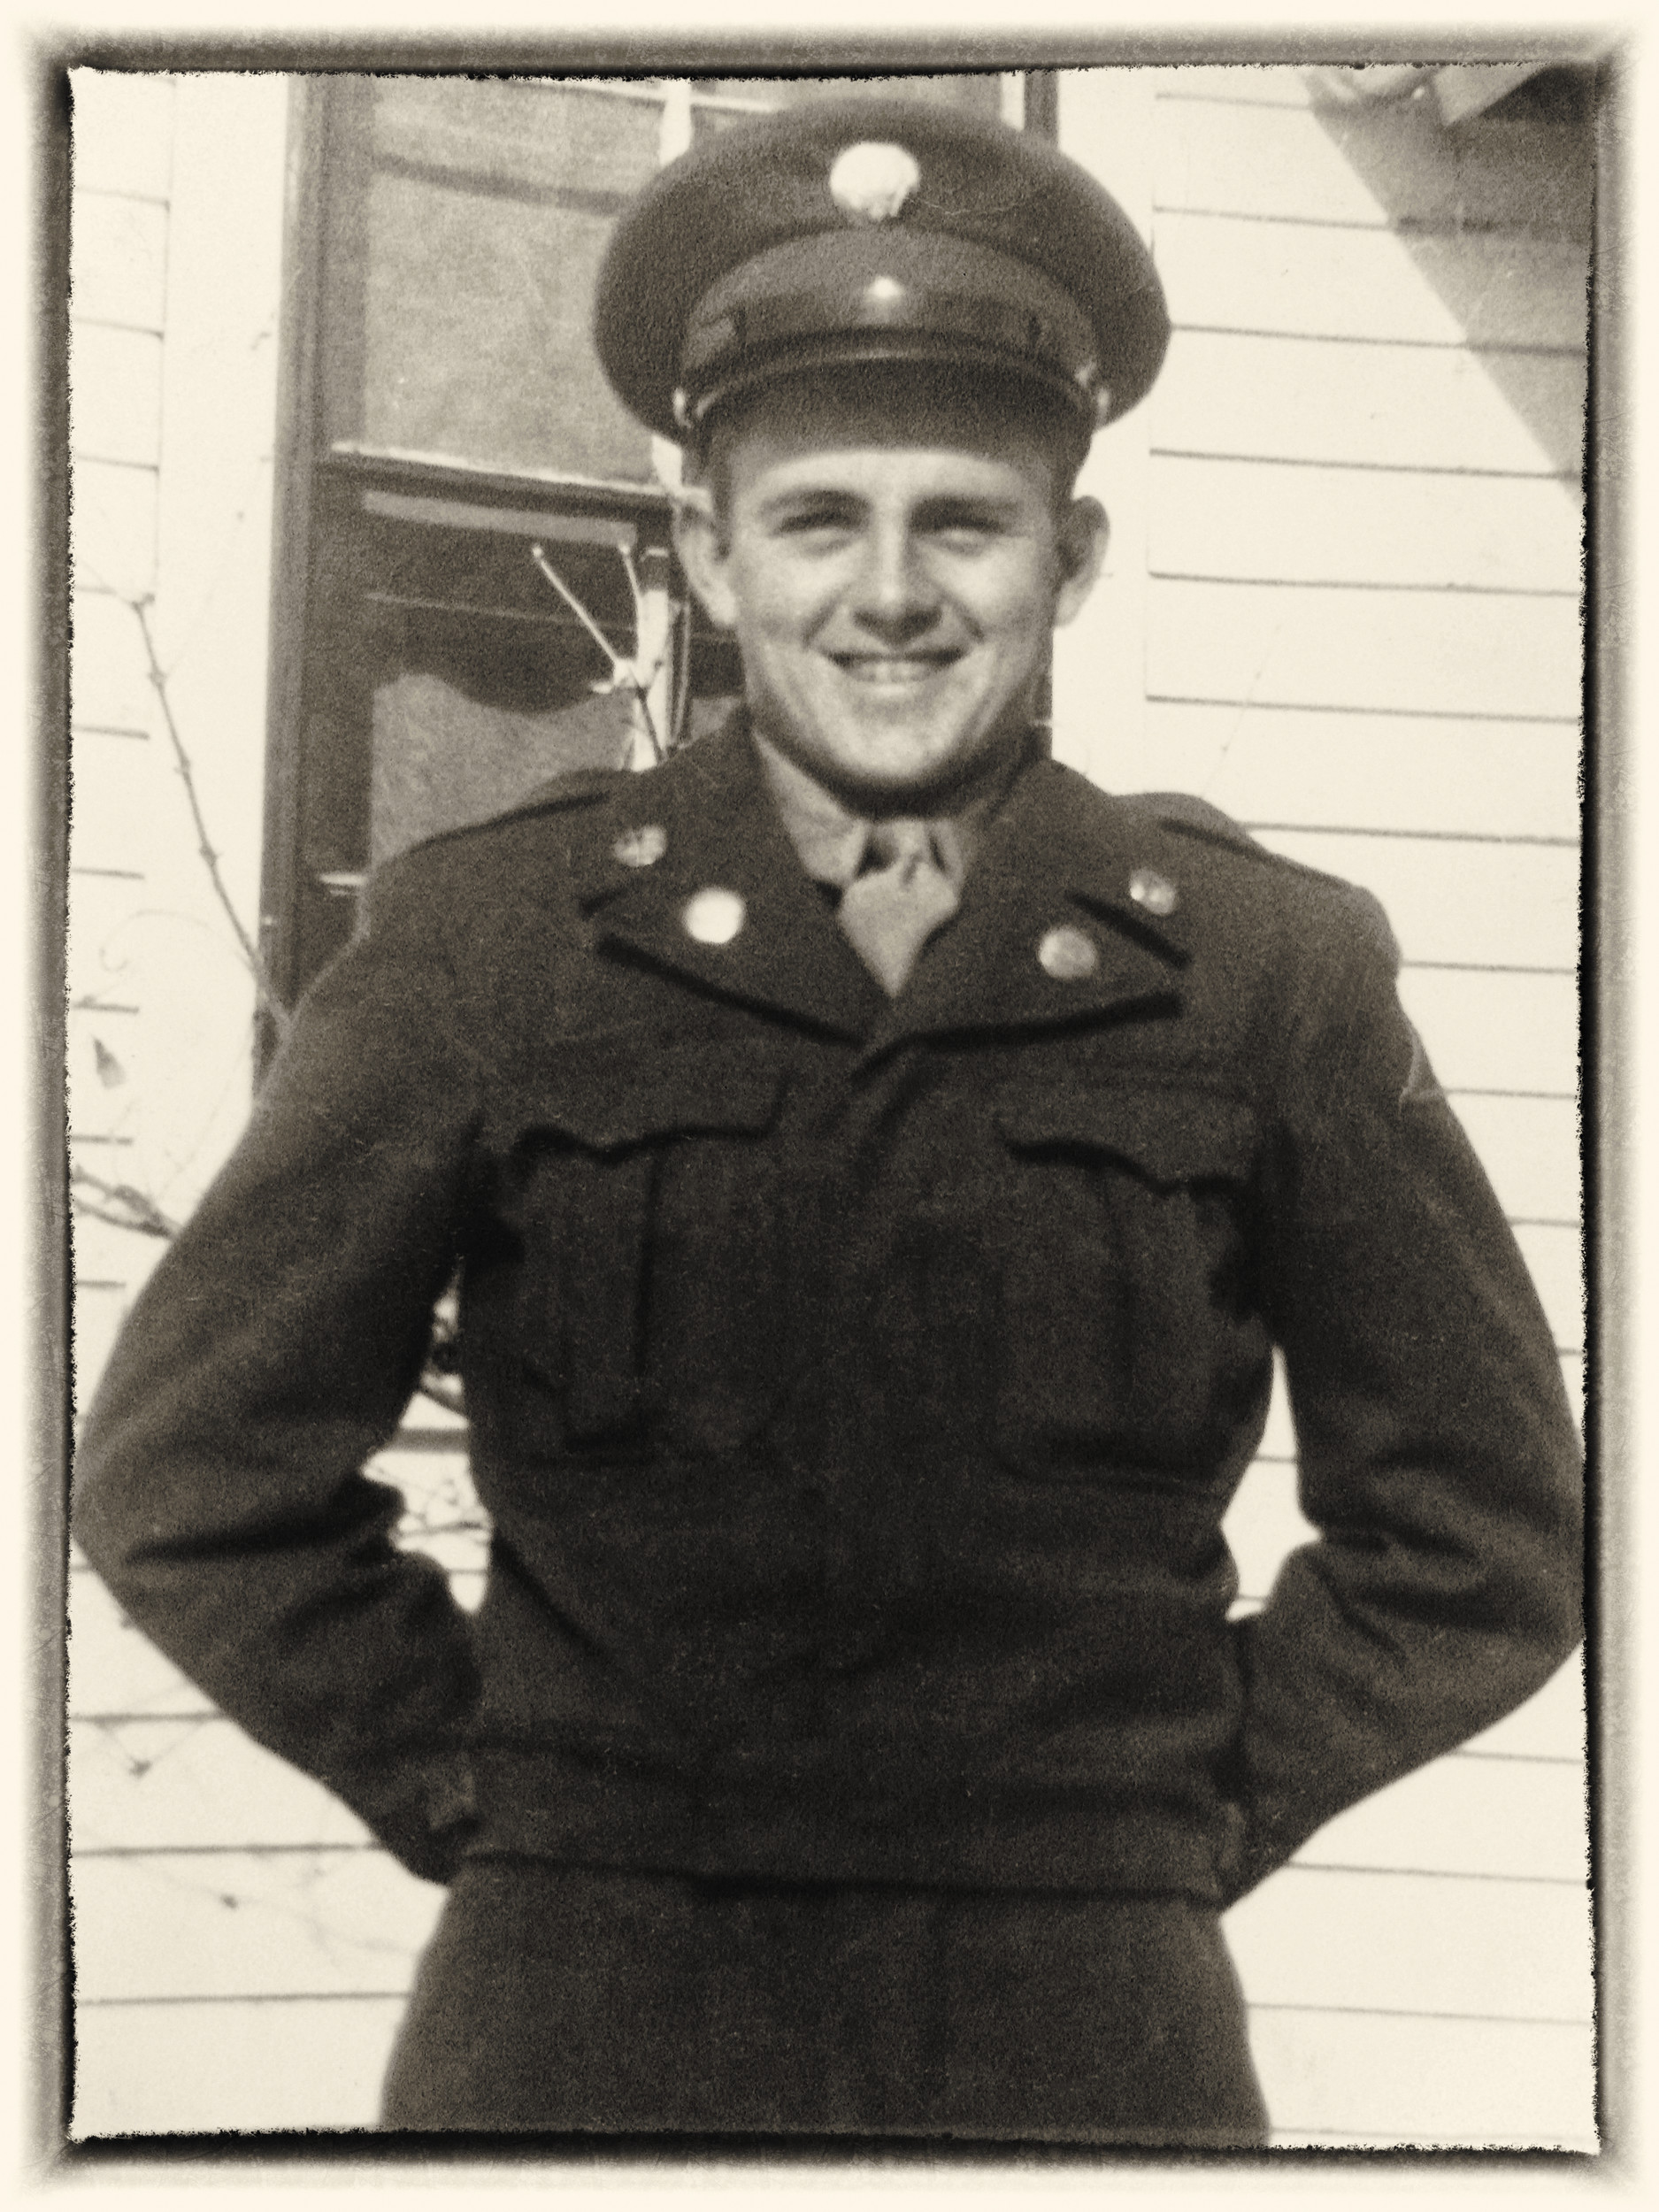 news littleton colorado littletonindependent net a picture of 19 year old littleton resident floyd jackson after he joined the